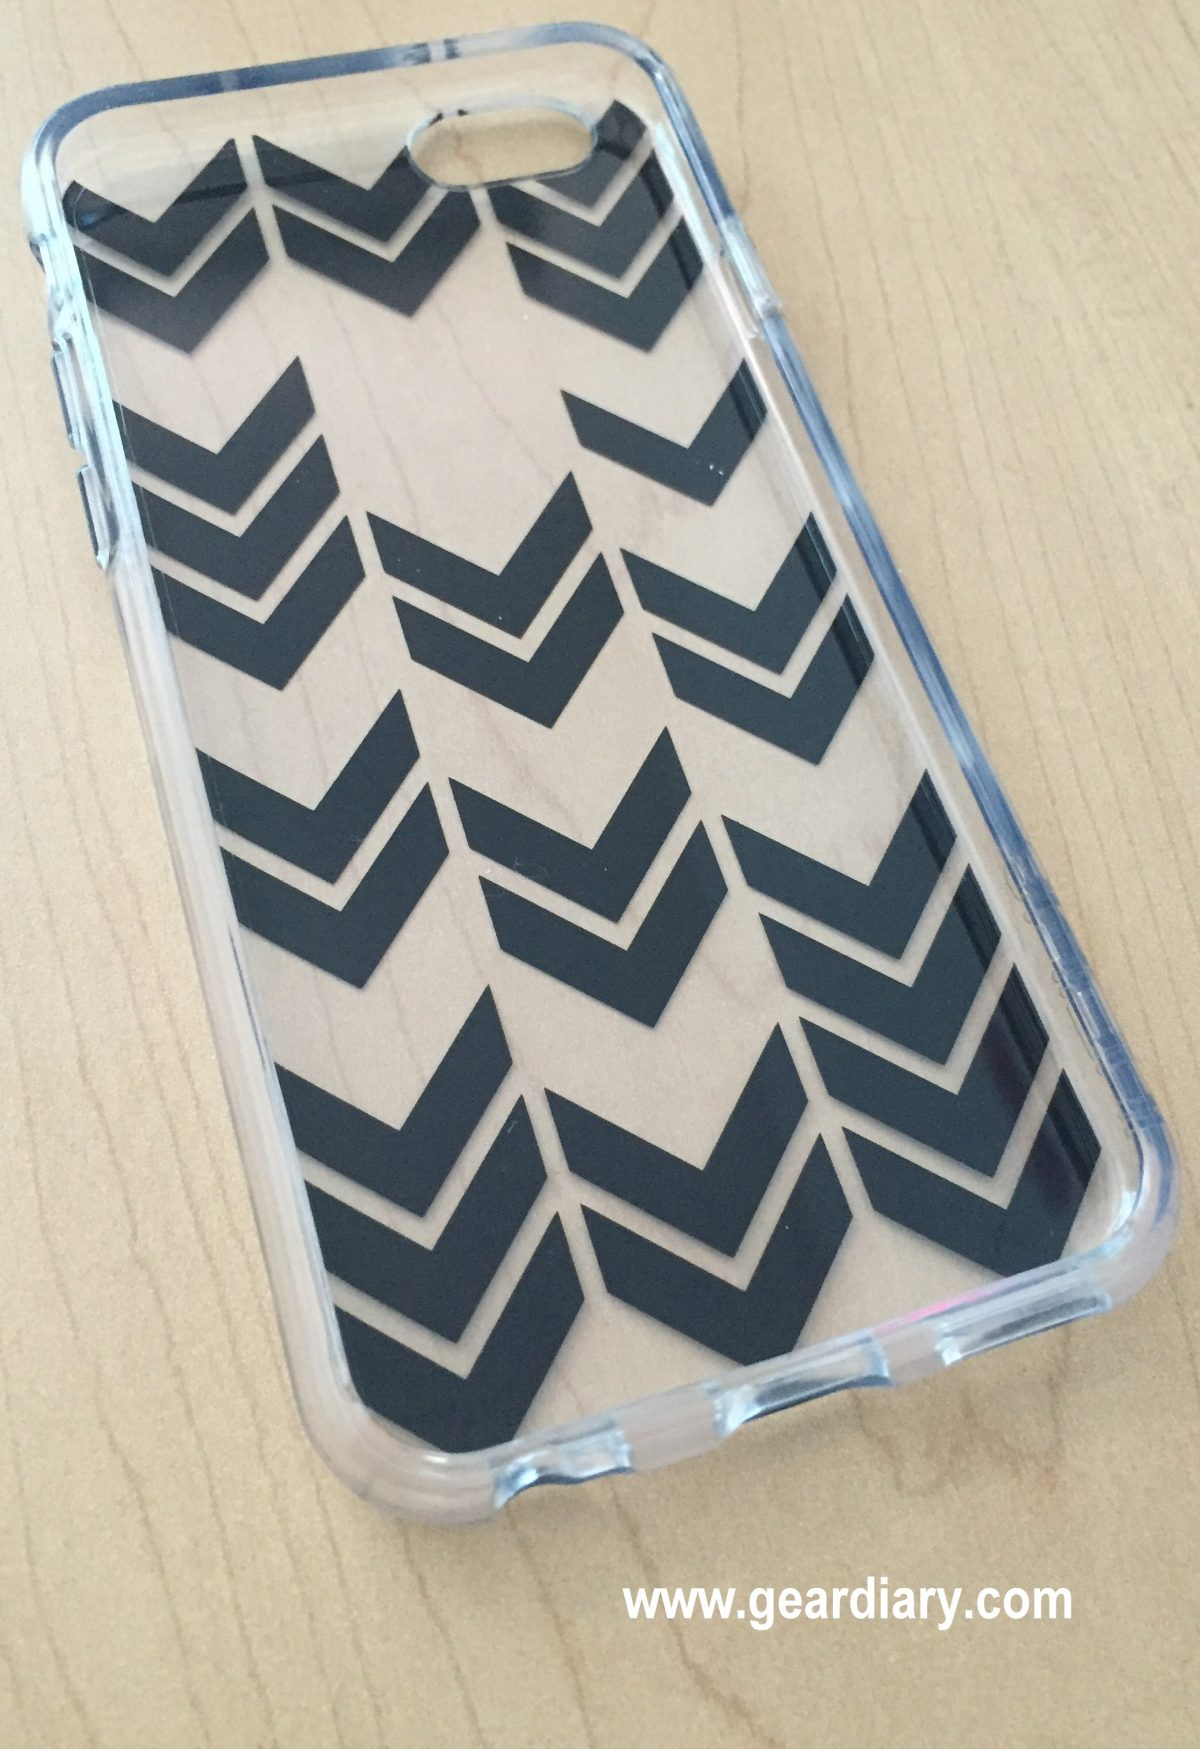 GearDiary Incipio's Design Series Case for iPhone 6: Protect Your Phone and Your Sense of Style!